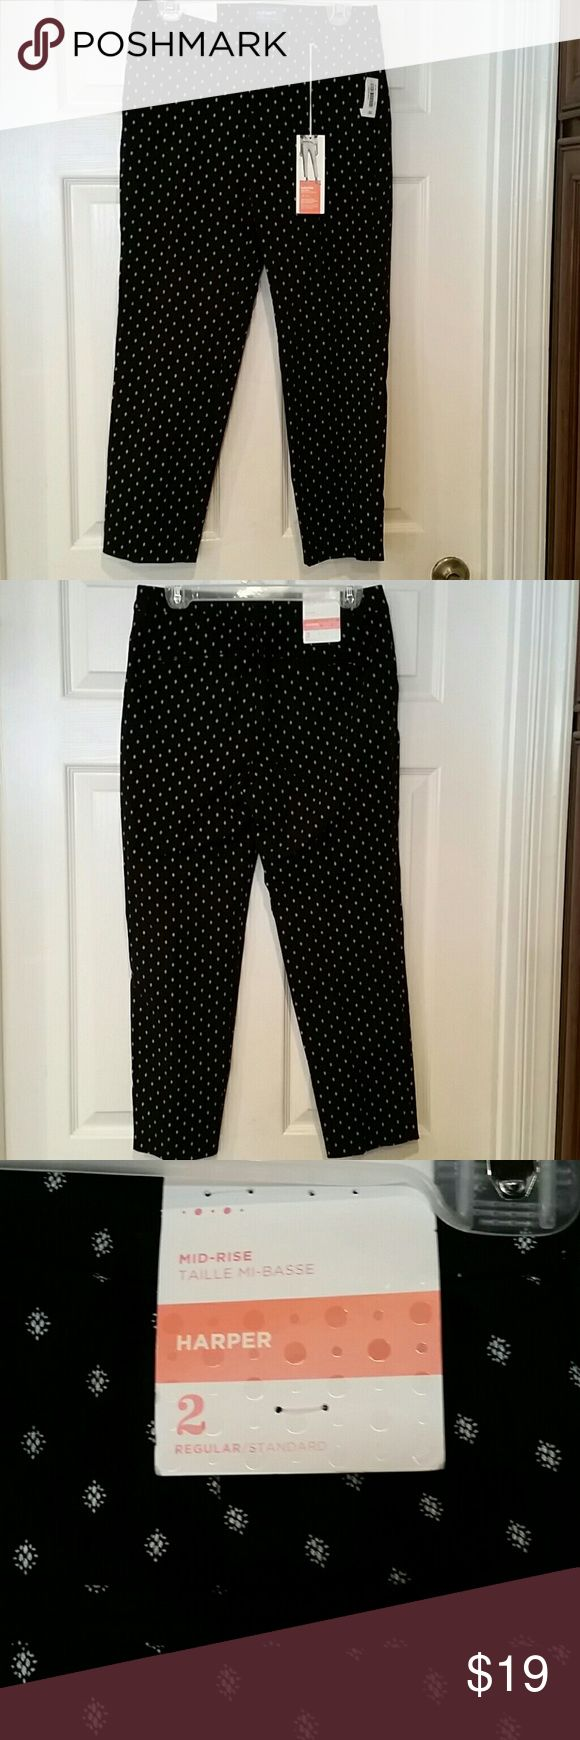 Women's Size 2 Old Navy Black/White Mid Rise Pant 97% cotton 3% spandex black and white trousers from Old Navy in women's size 2. NWT.  Mid rise Harper series. Slightly tapered and ankle length.  Adorable! Old Navy Pants Ankle & Cropped